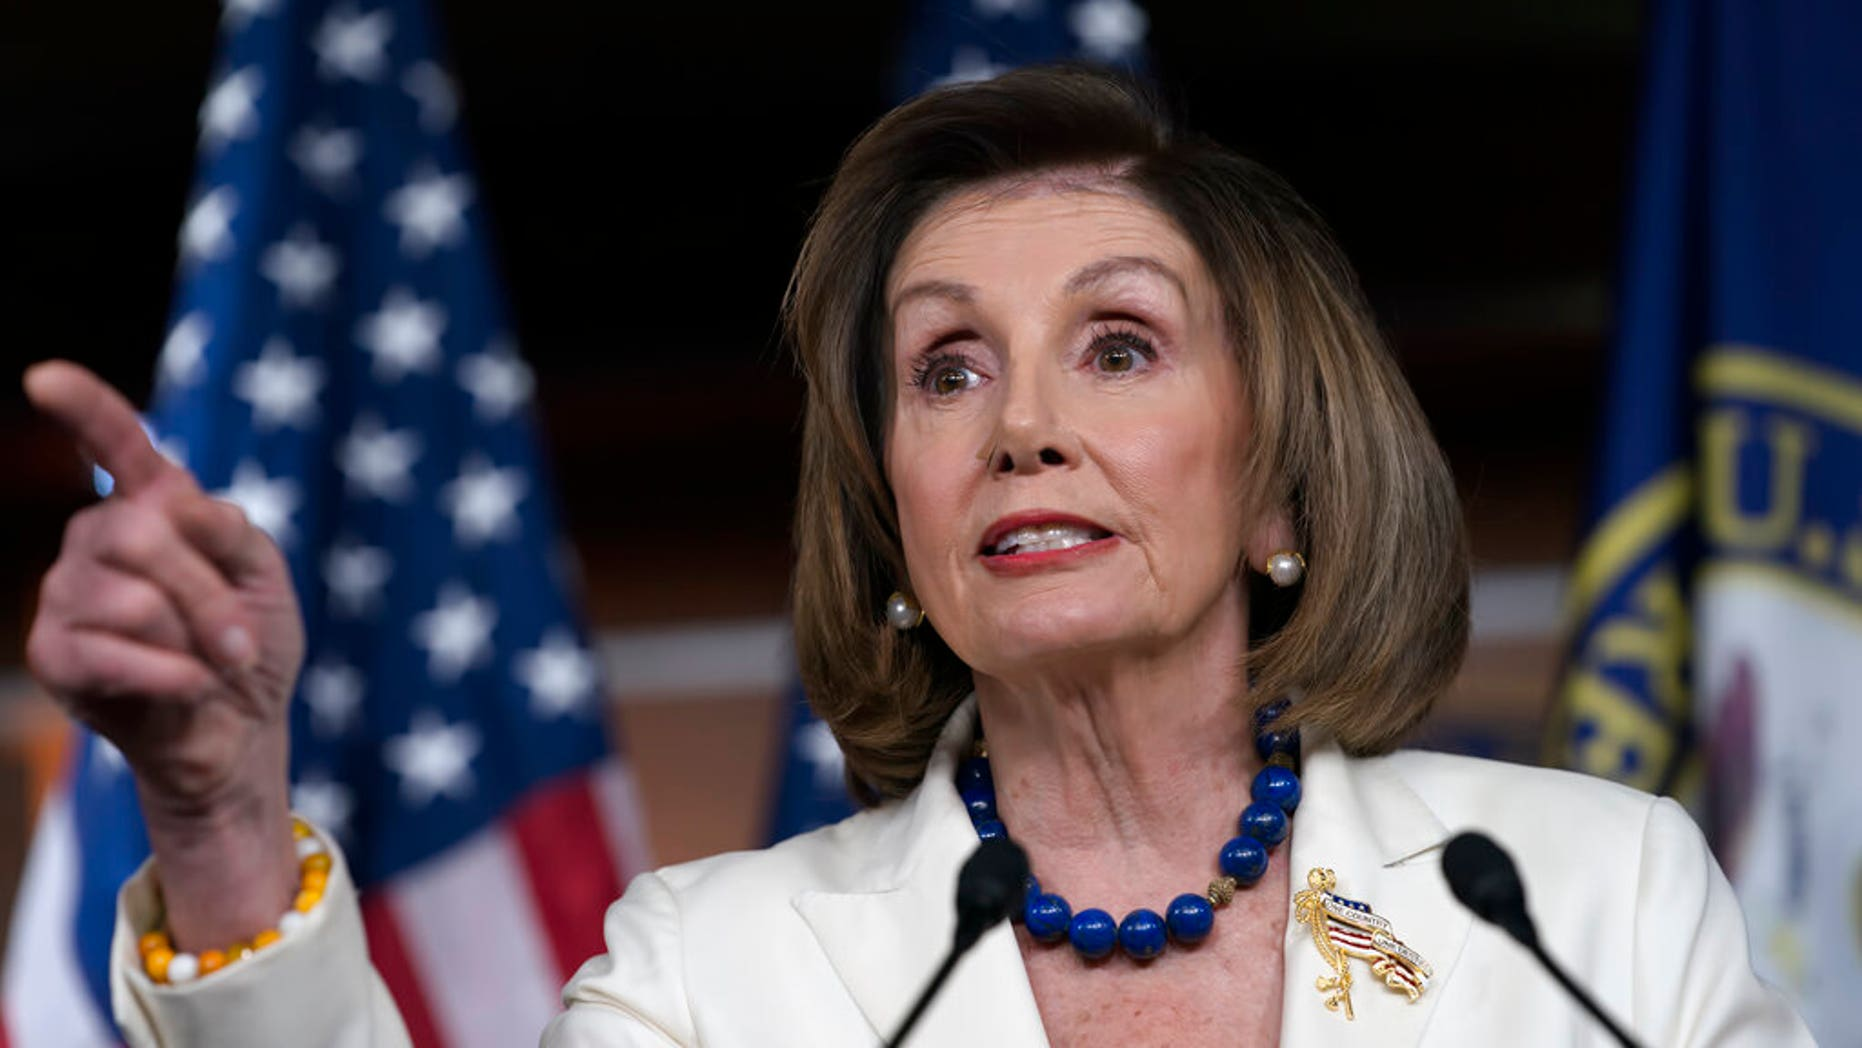 Westlake Legal Group Pelosi120619 Pelosi calls for articles of impeachment against Trump, but then doesn't want to discuss it fox-news/columns/fox-news-first fox news fnc/us fnc article 3350395c-9839-5f05-814c-382f6f880c4b